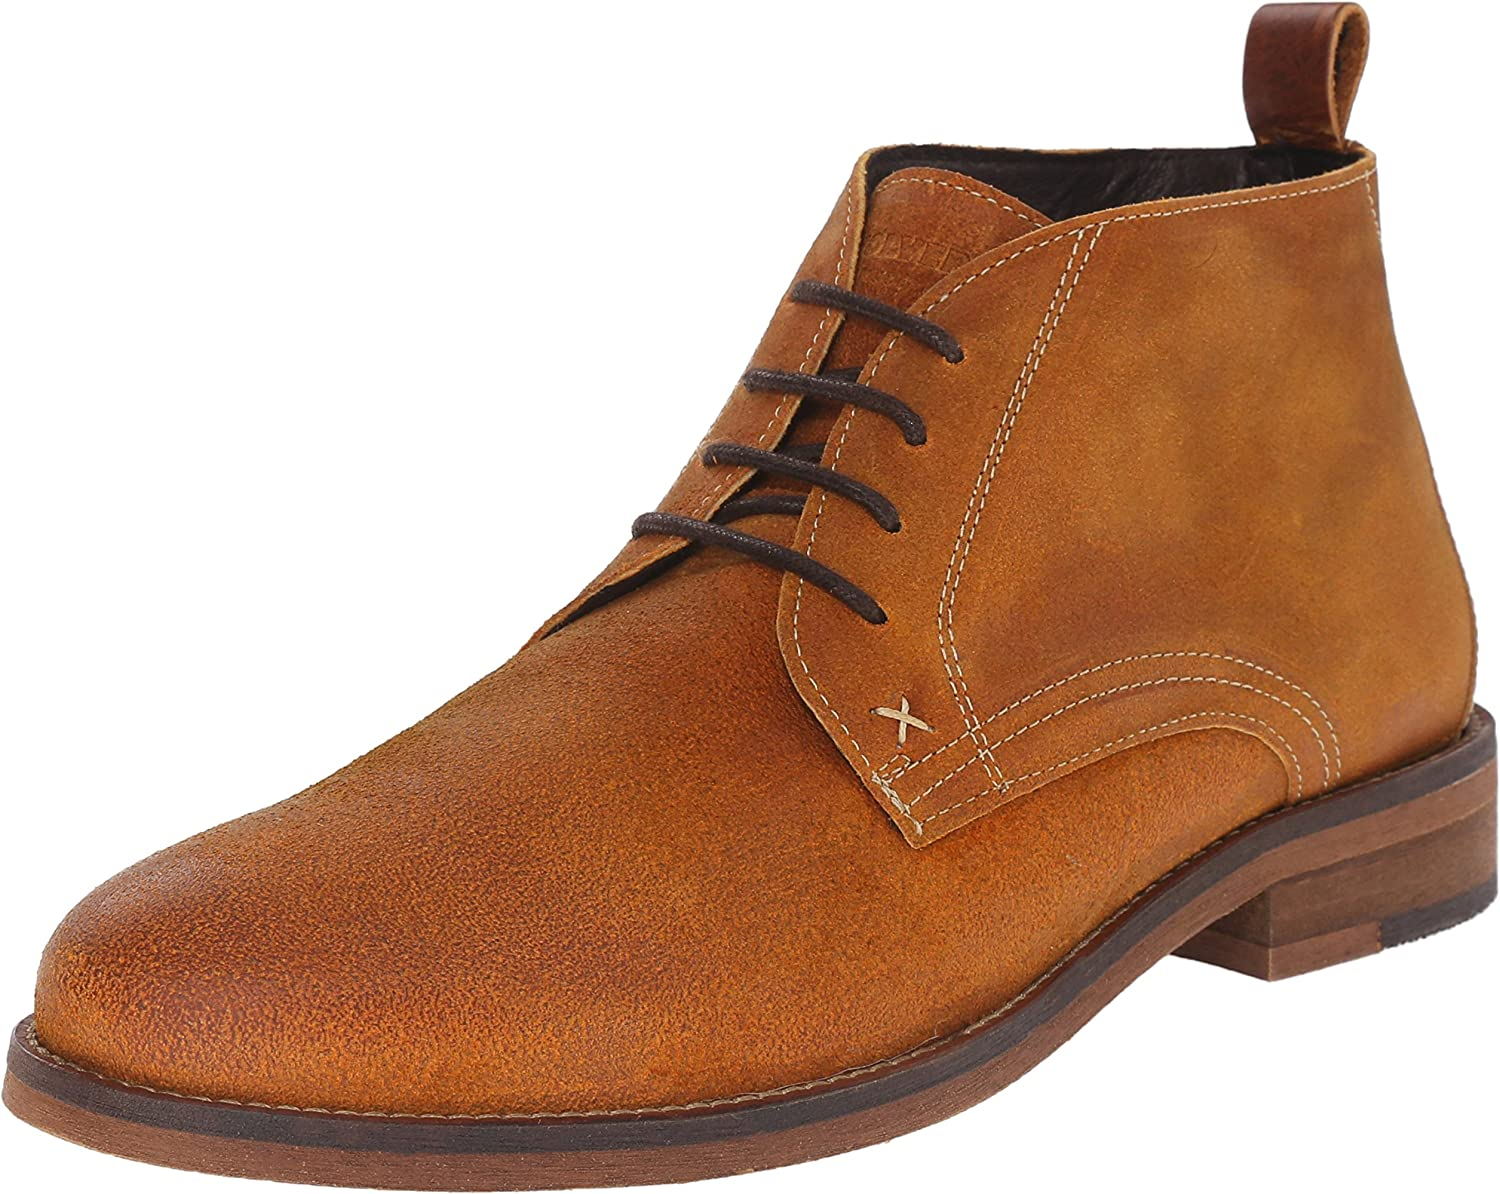 1883 by Wolverine Men's Hensel Chukka Boot